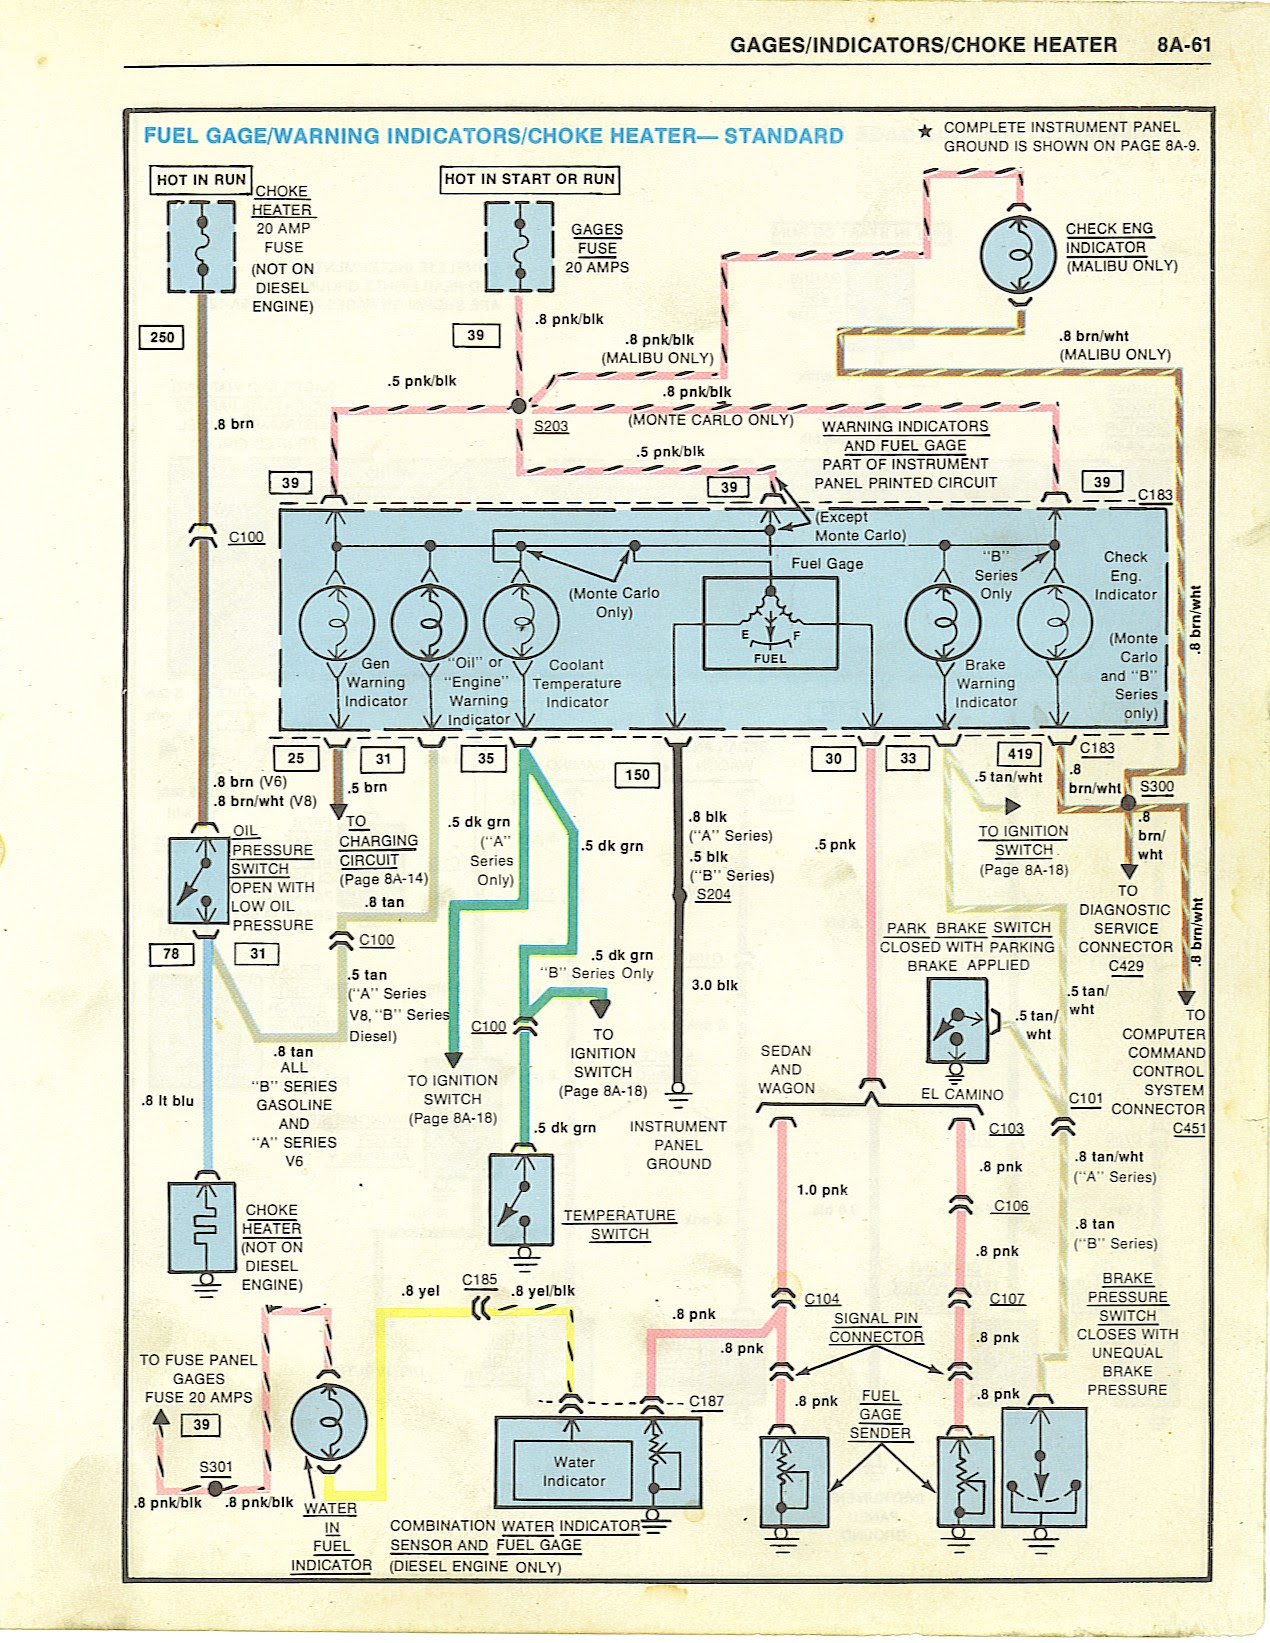 1969 El Camino Wiring Harness | Wiring Library